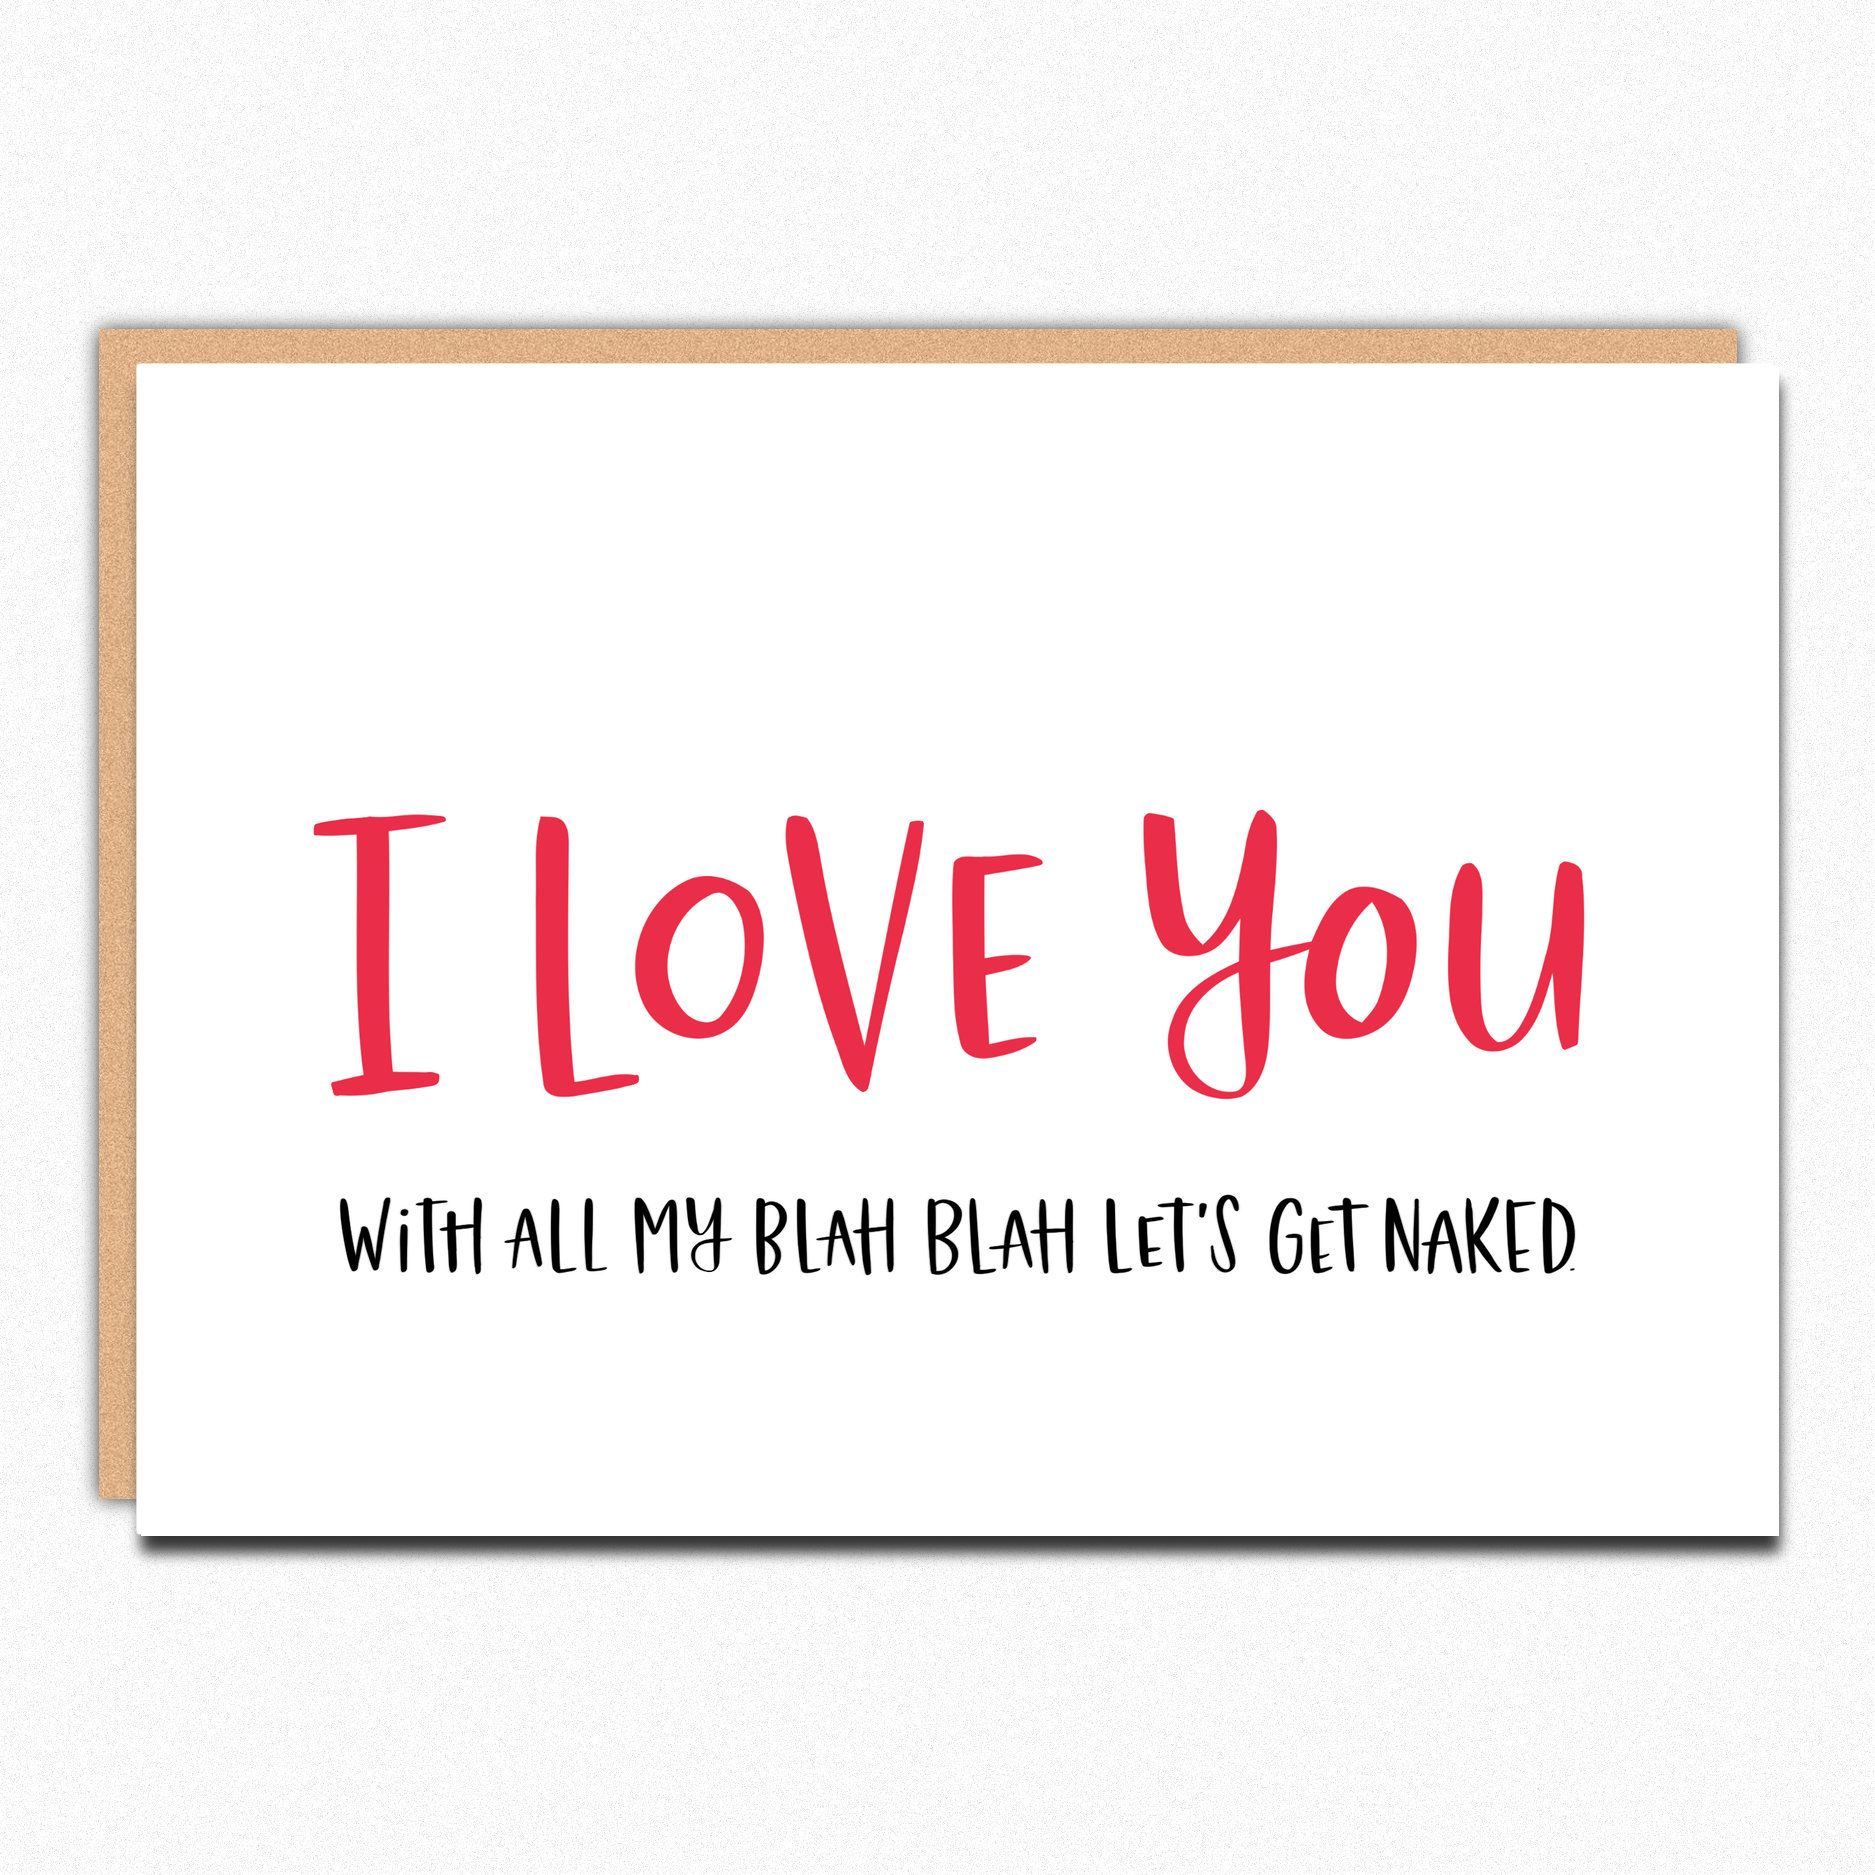 Naughty Valentines Day Card Funny Love Card Funny Etsy Funny Love Cards Naughty Valentines Valentines Day Card Funny